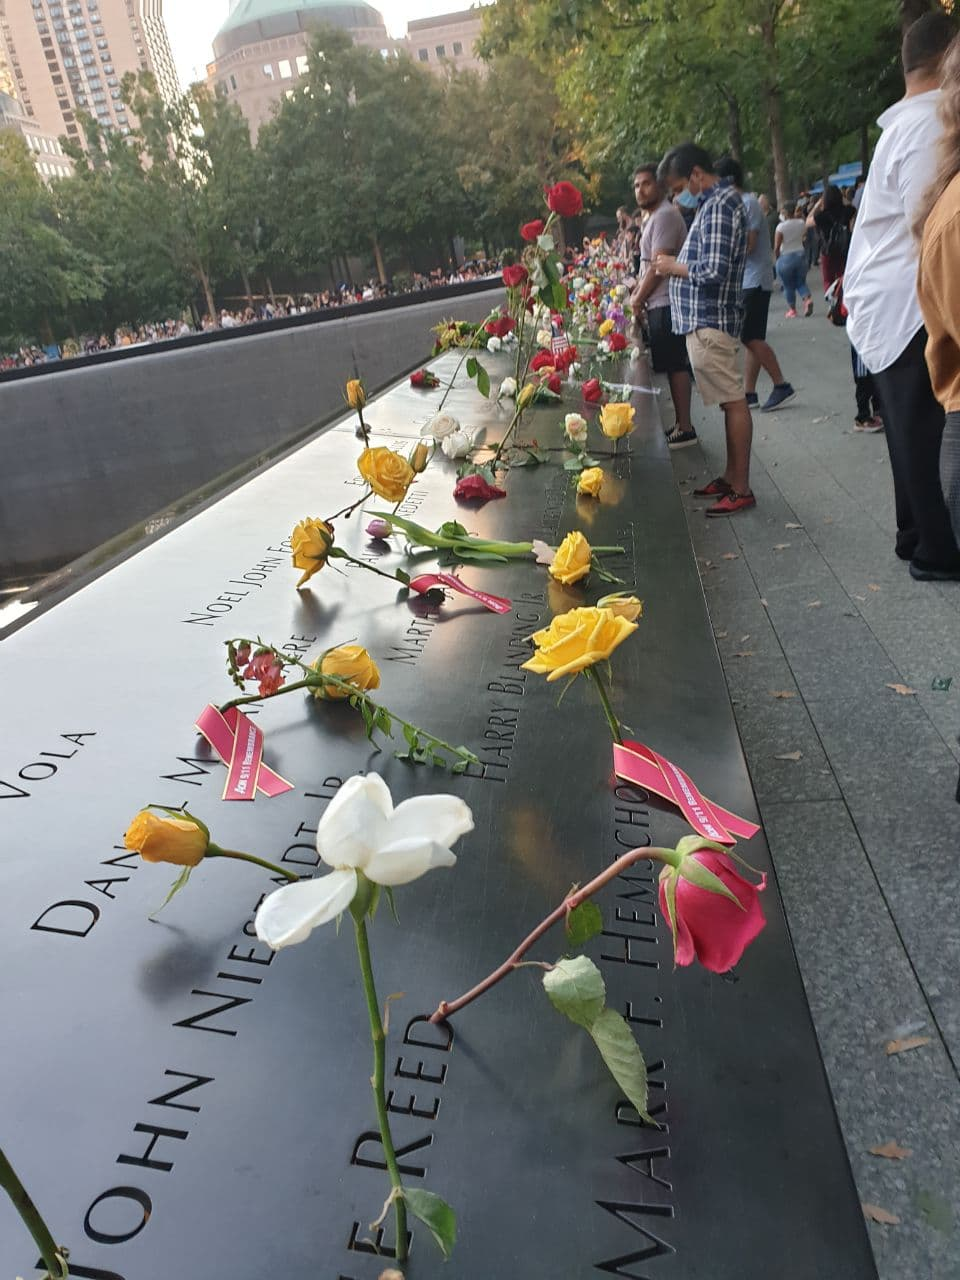 Flowers adorn the memorial of the September 11 attacks on the World Trade Centre on its 20th anniversary